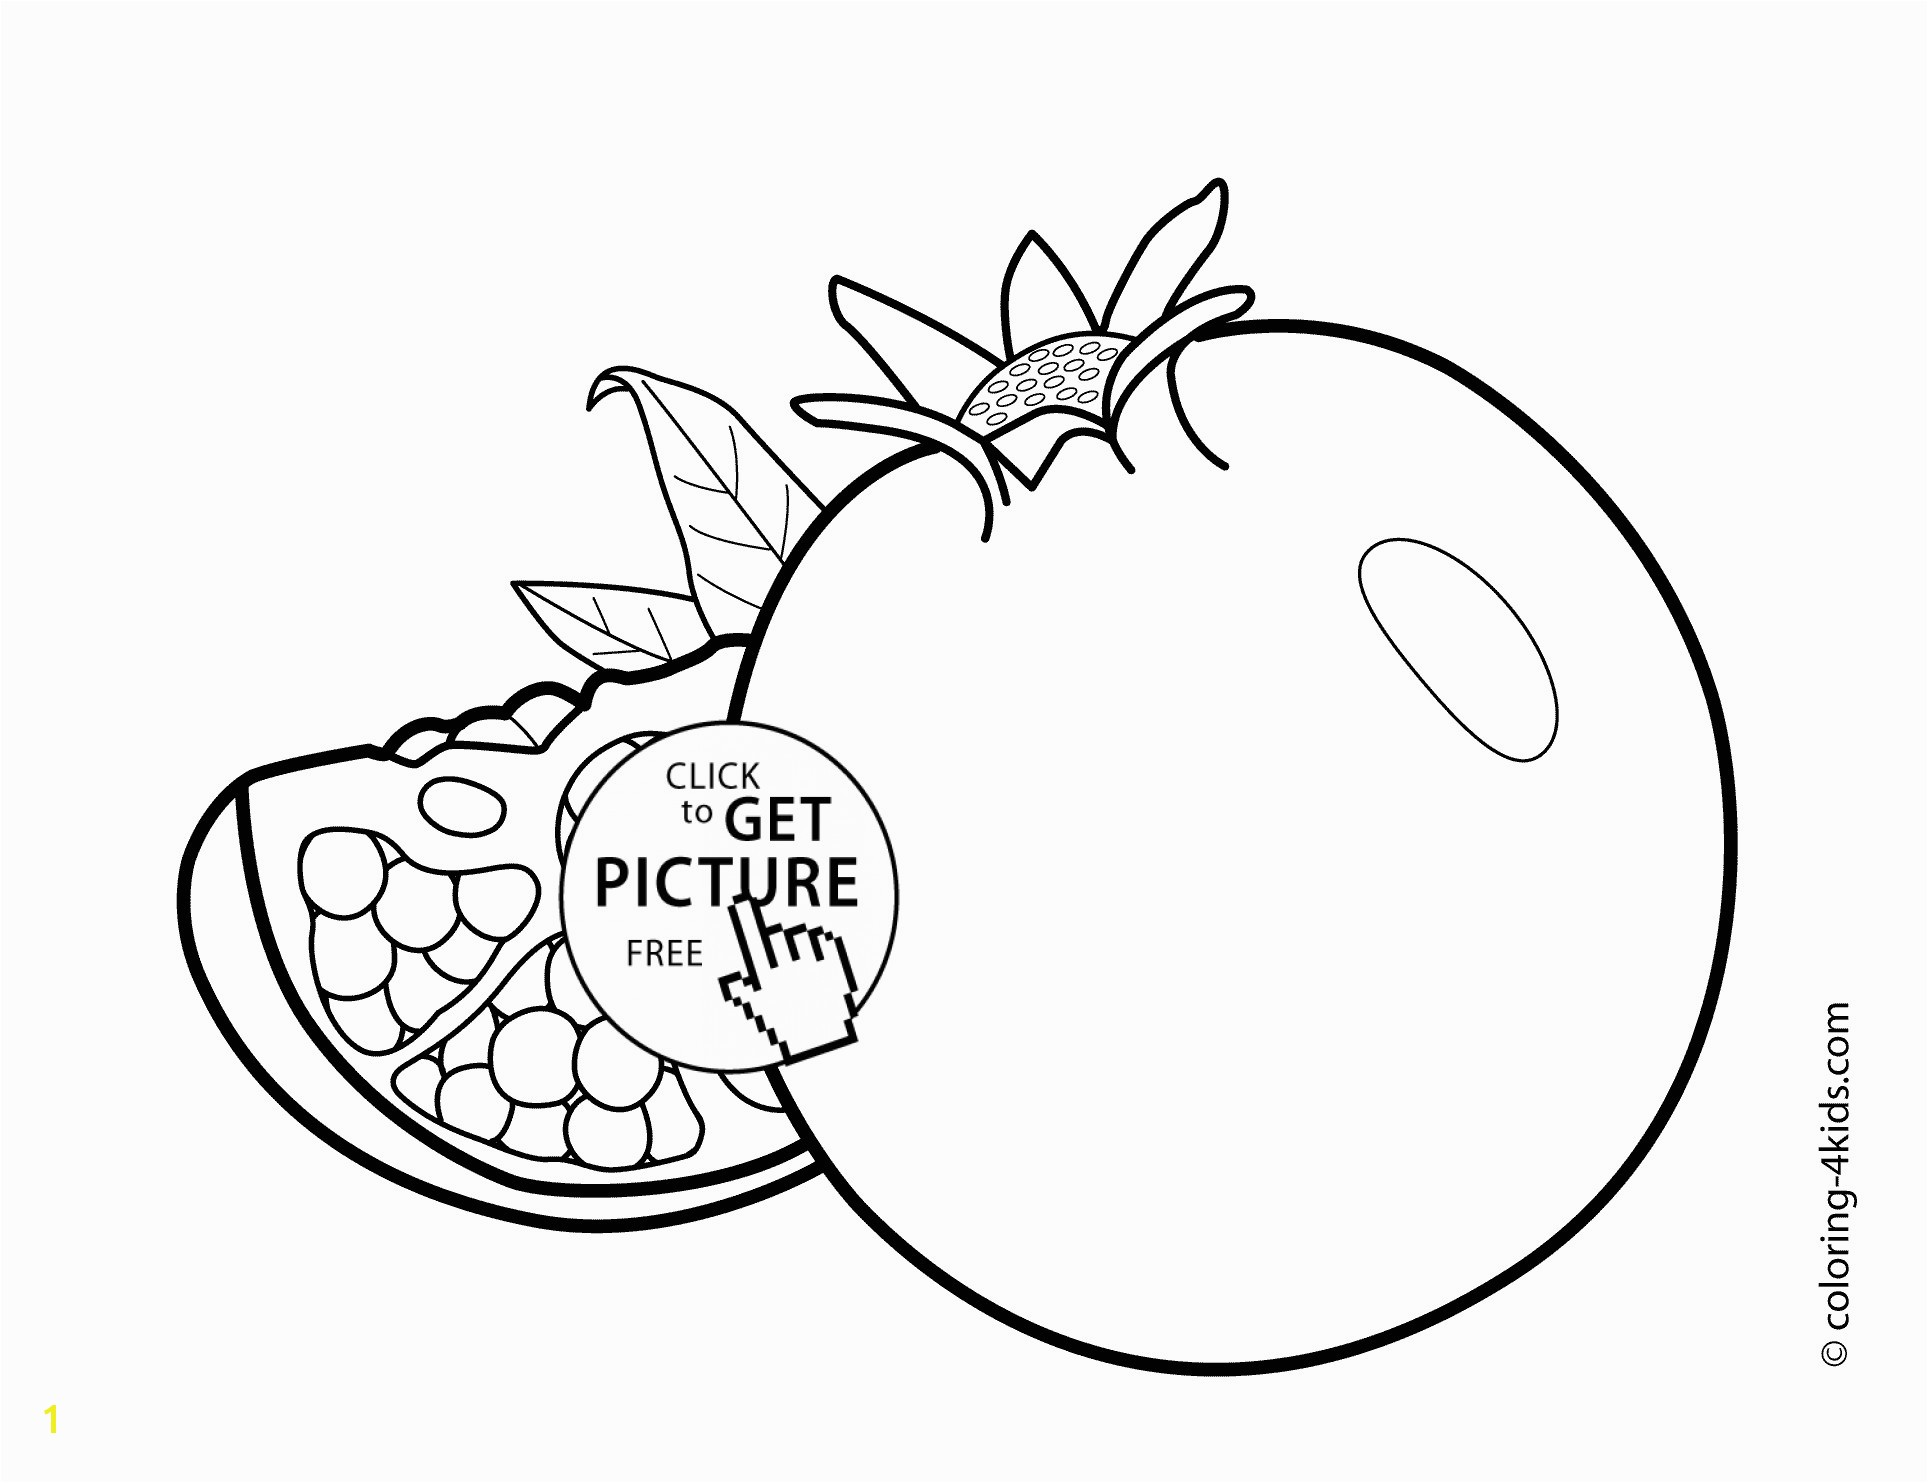 Coloring Pages Fruits And Ve ables For Kids Pomegranate Drawing At Getdrawings